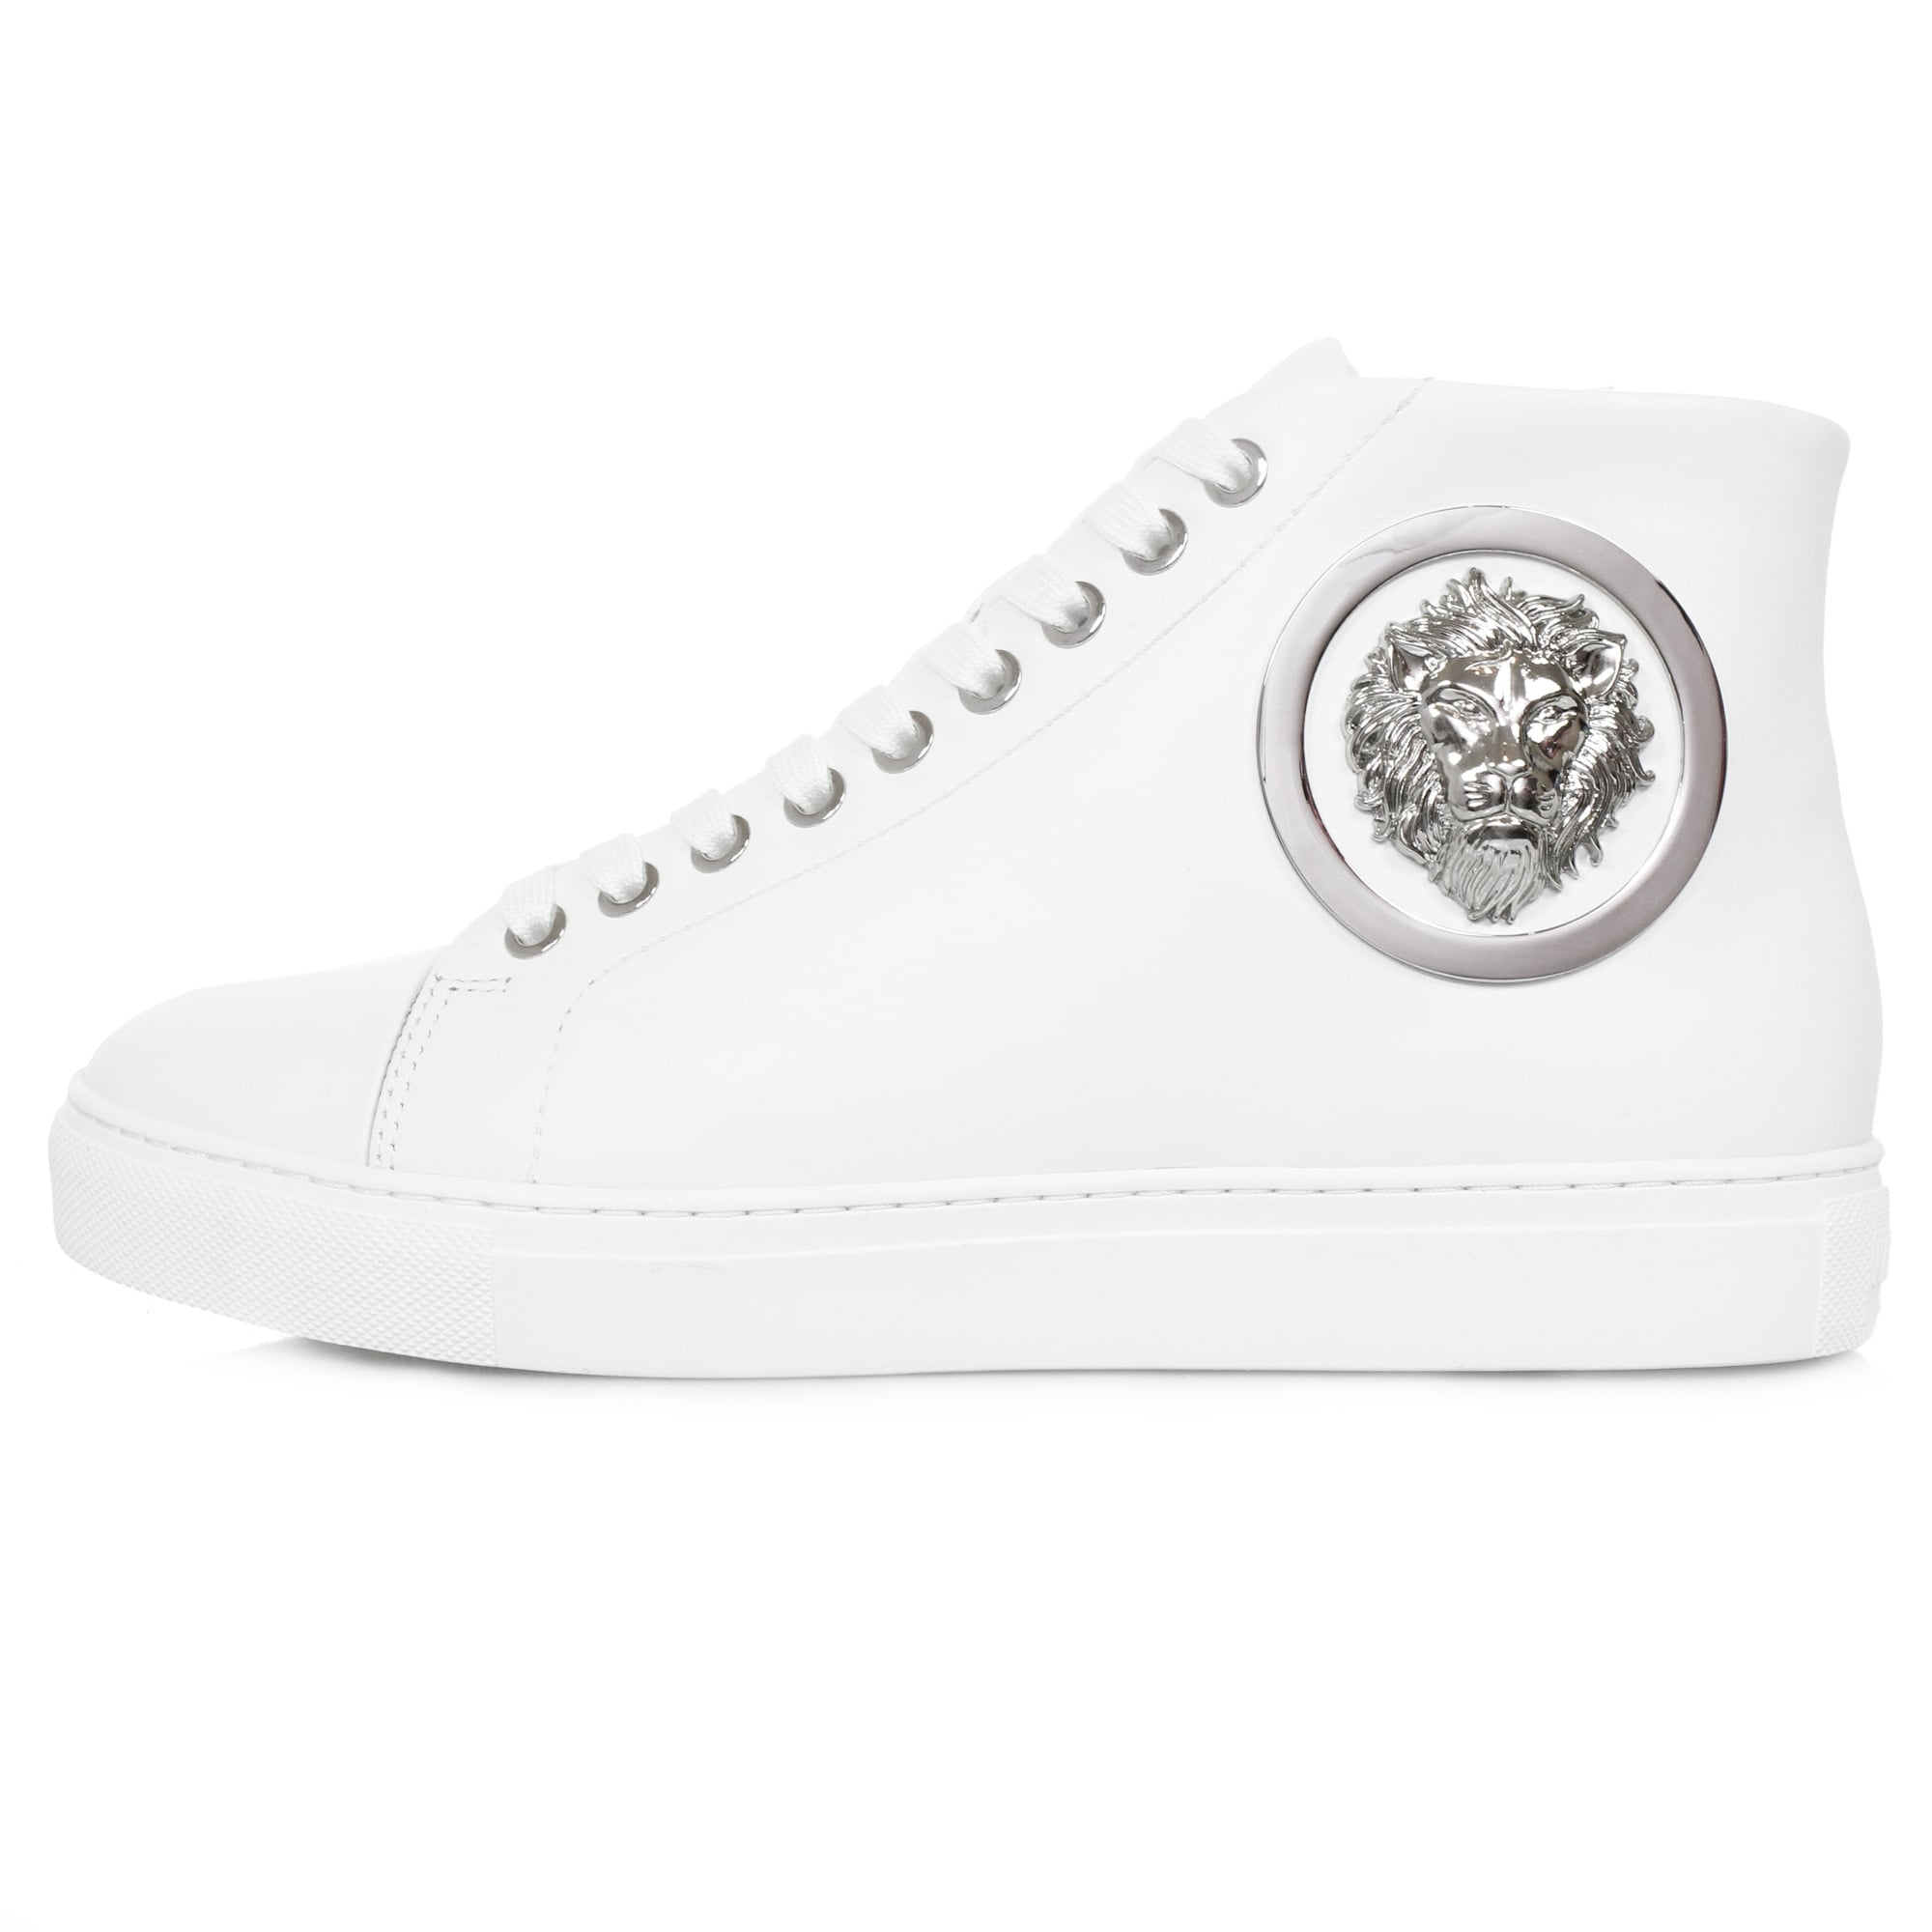 FOOTWEAR - High-tops & sneakers Lion Buy Cheap Amazing Price Cheapest Price Sale Online Low Cost cOs6AmdMLt